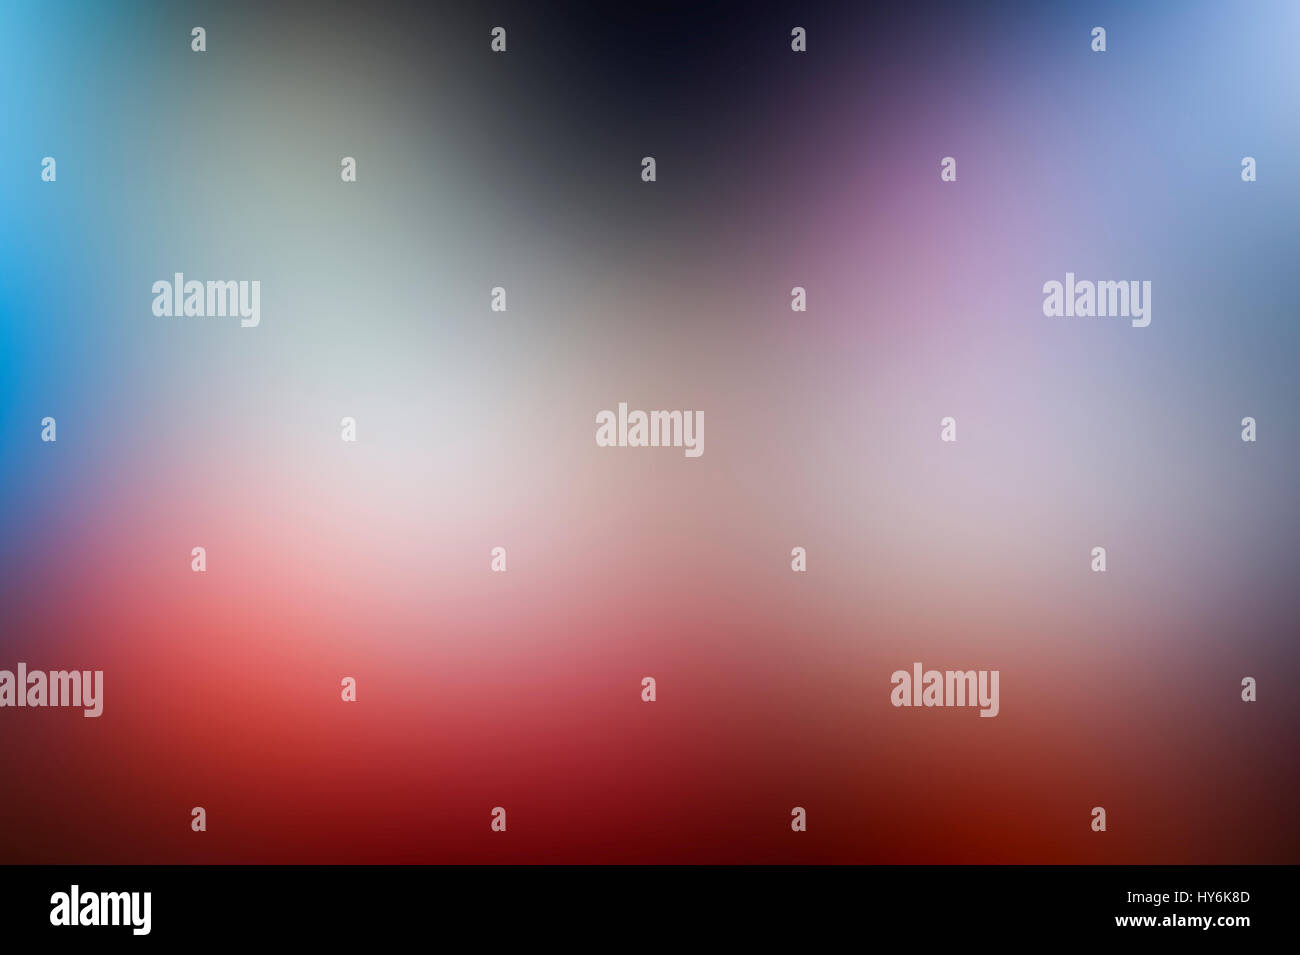 Abstract blurred gradient mesh background in bright rainbow colors. Colorful smooth banner template Stock Photo